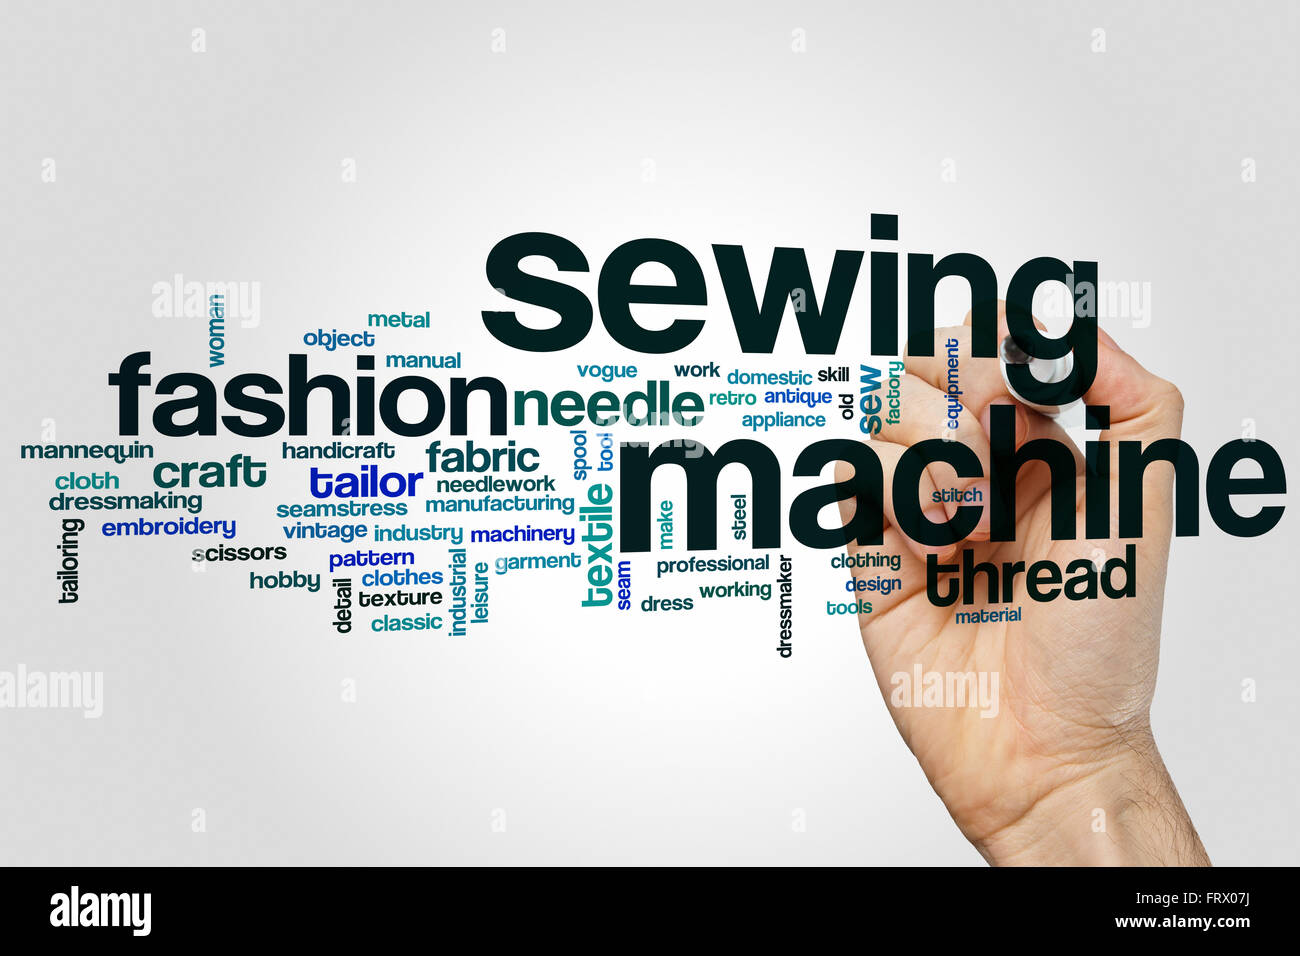 Sewing Machine Word Cloud Concept With Fashion Clothing Related Tags Stock Photo Royalty Free